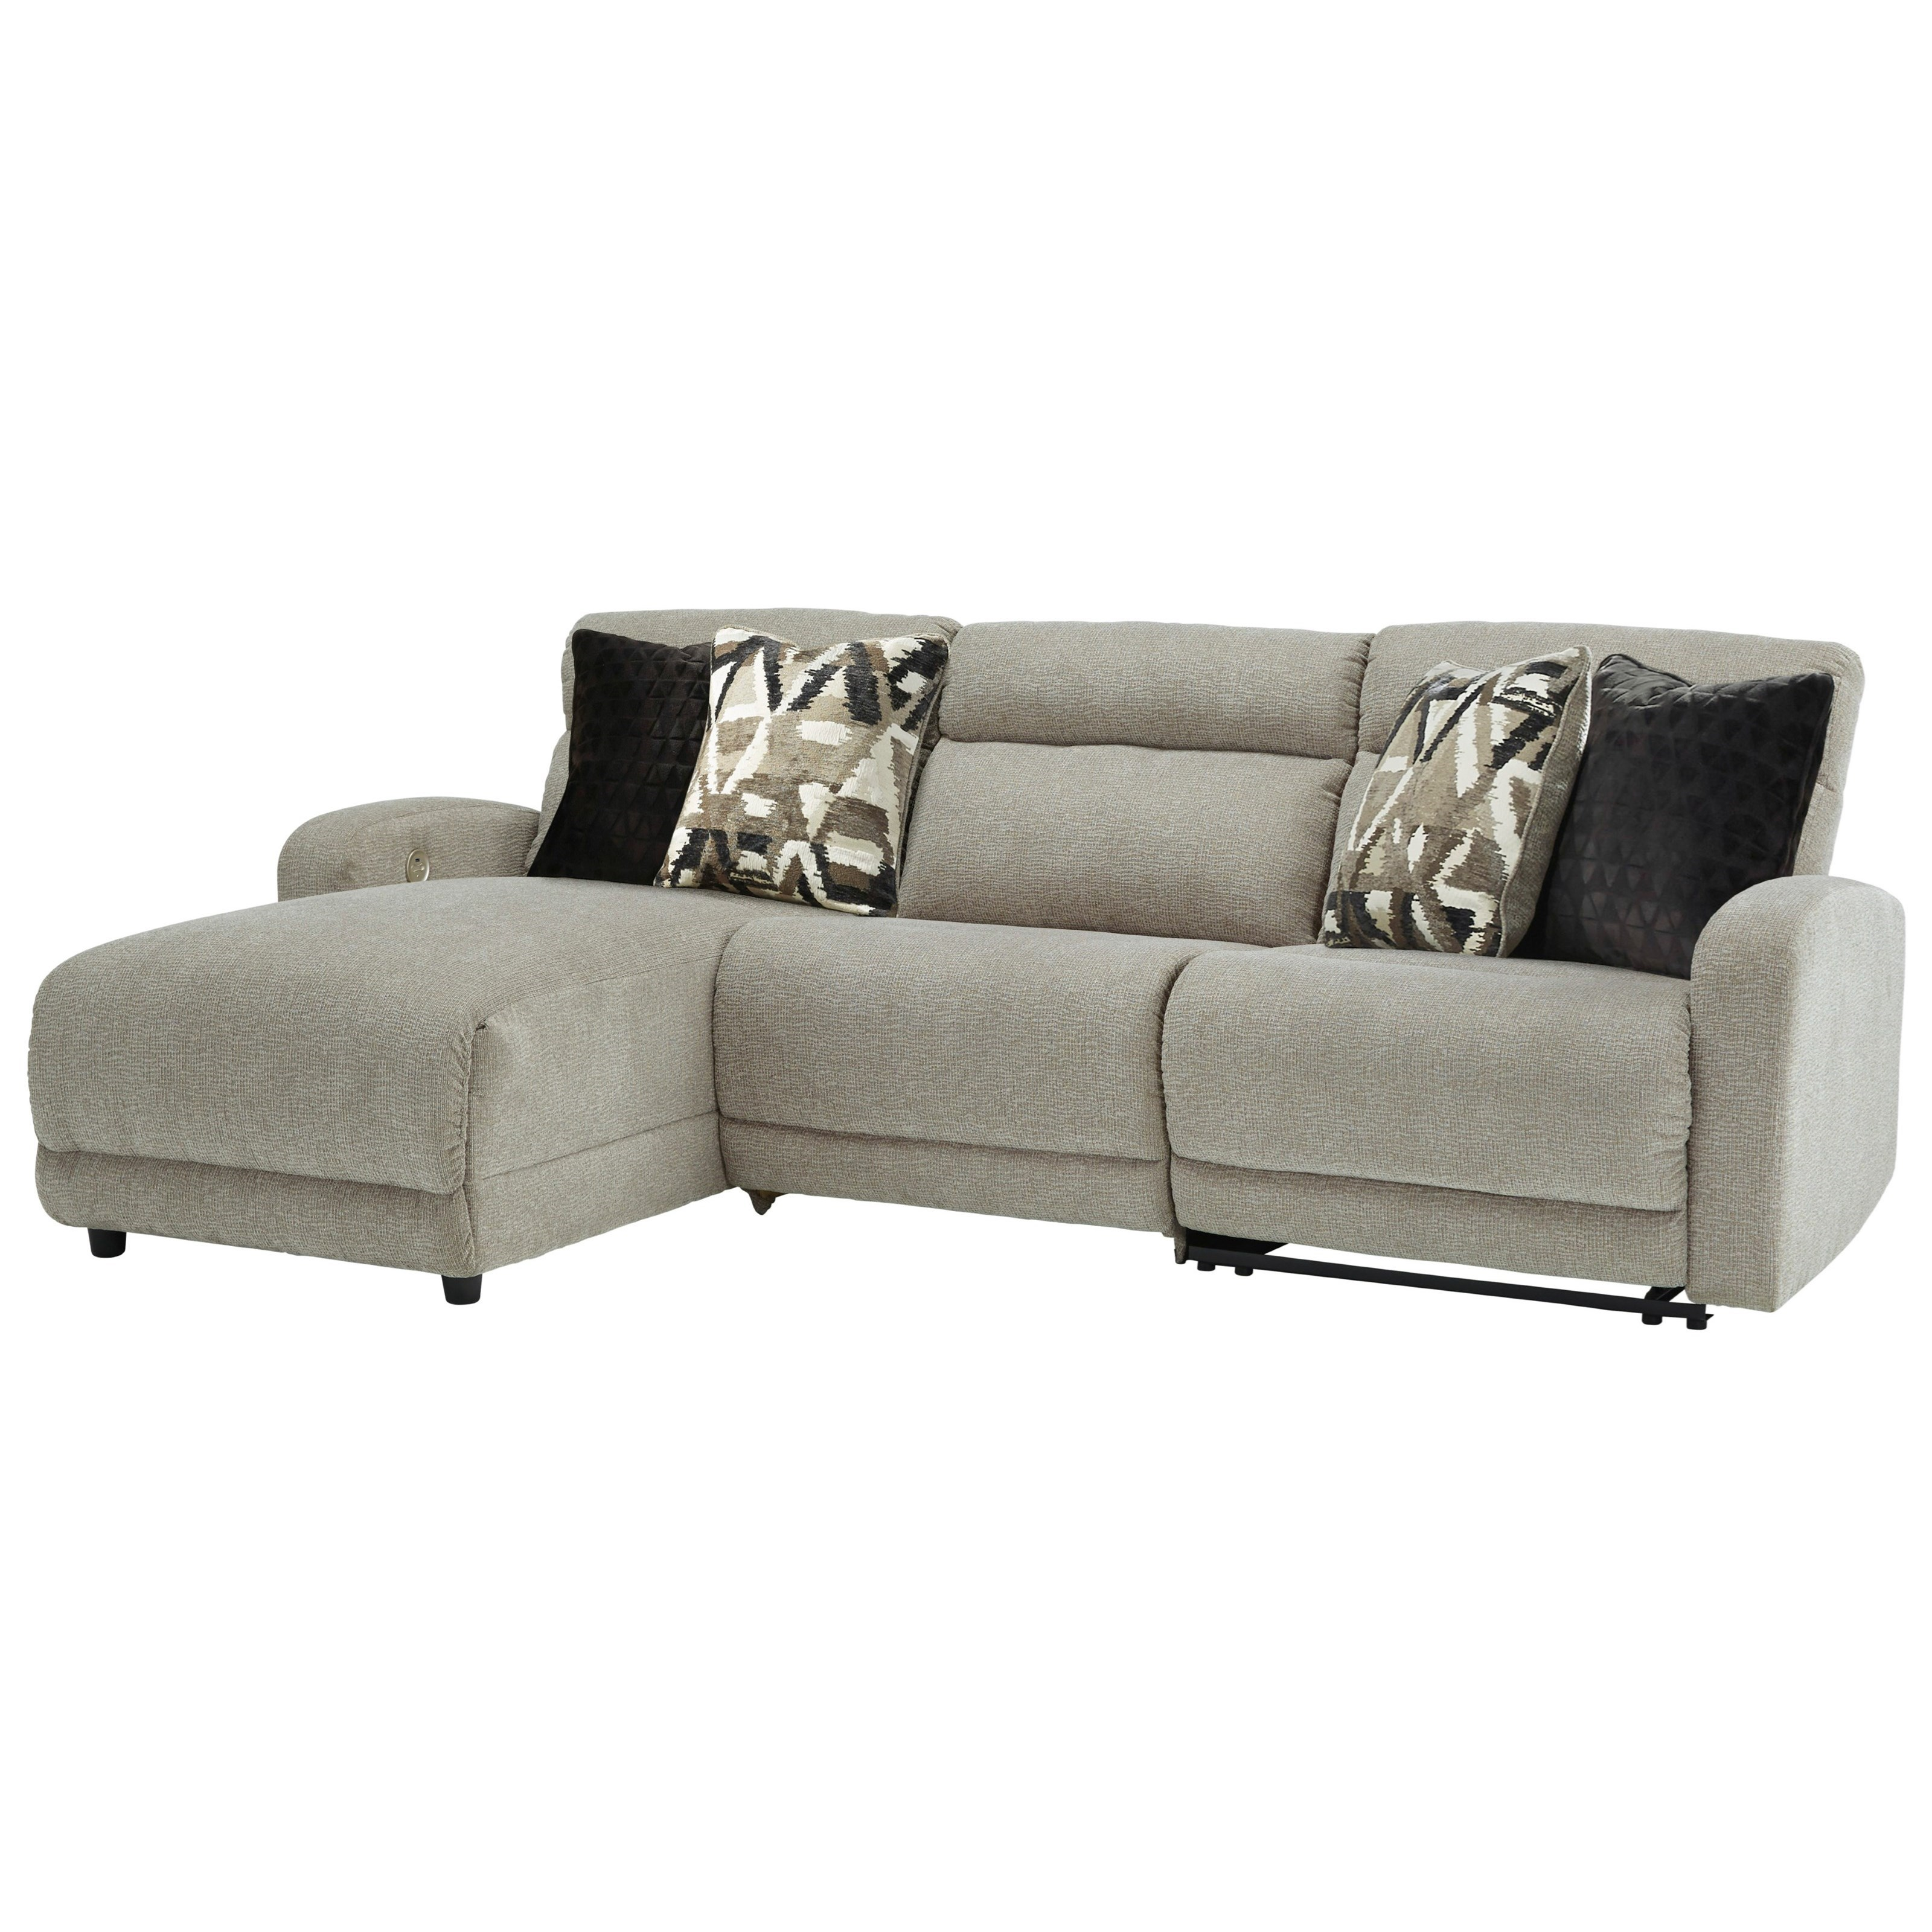 Colleyville 3-Piece Power Recl Sectional with Chaise by Signature Design by Ashley at Standard Furniture